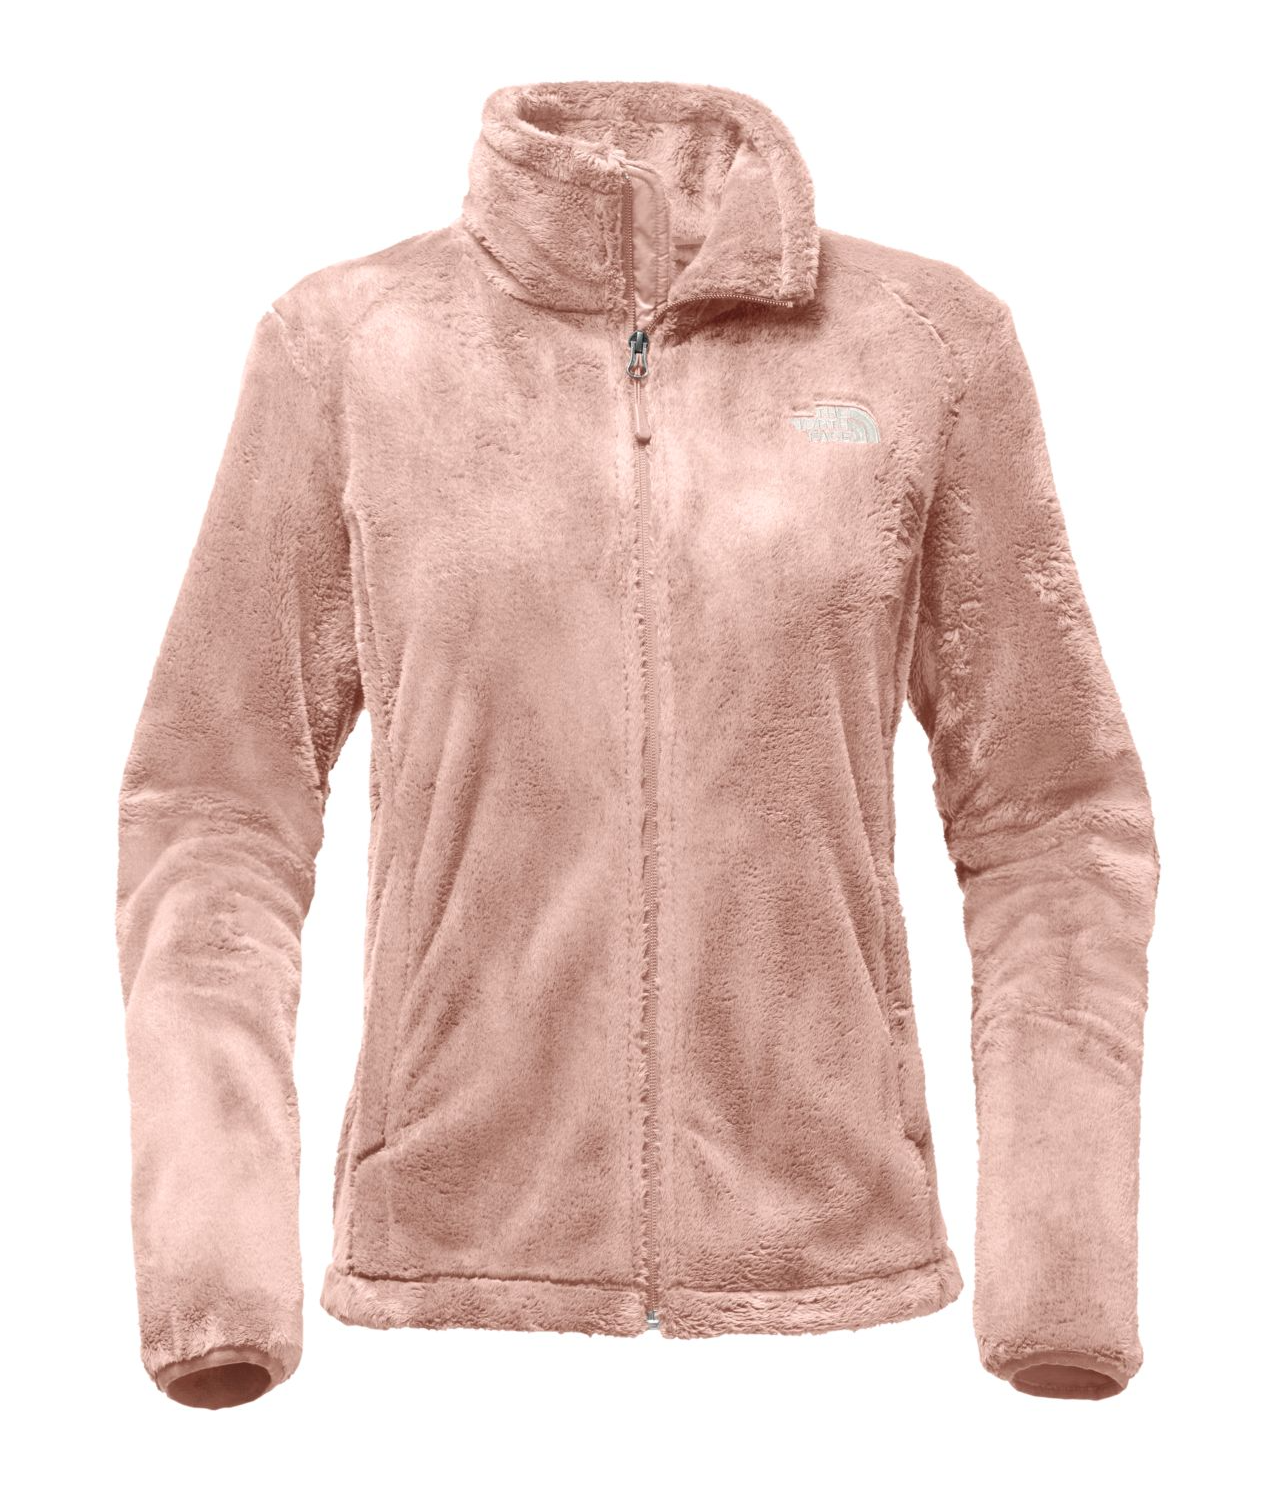 Women S Osito Jacket Free Shipping The North Face North Face Jacket Fuzzy Casual Winter Outfits Fleece Jacket [ 1490 x 1276 Pixel ]